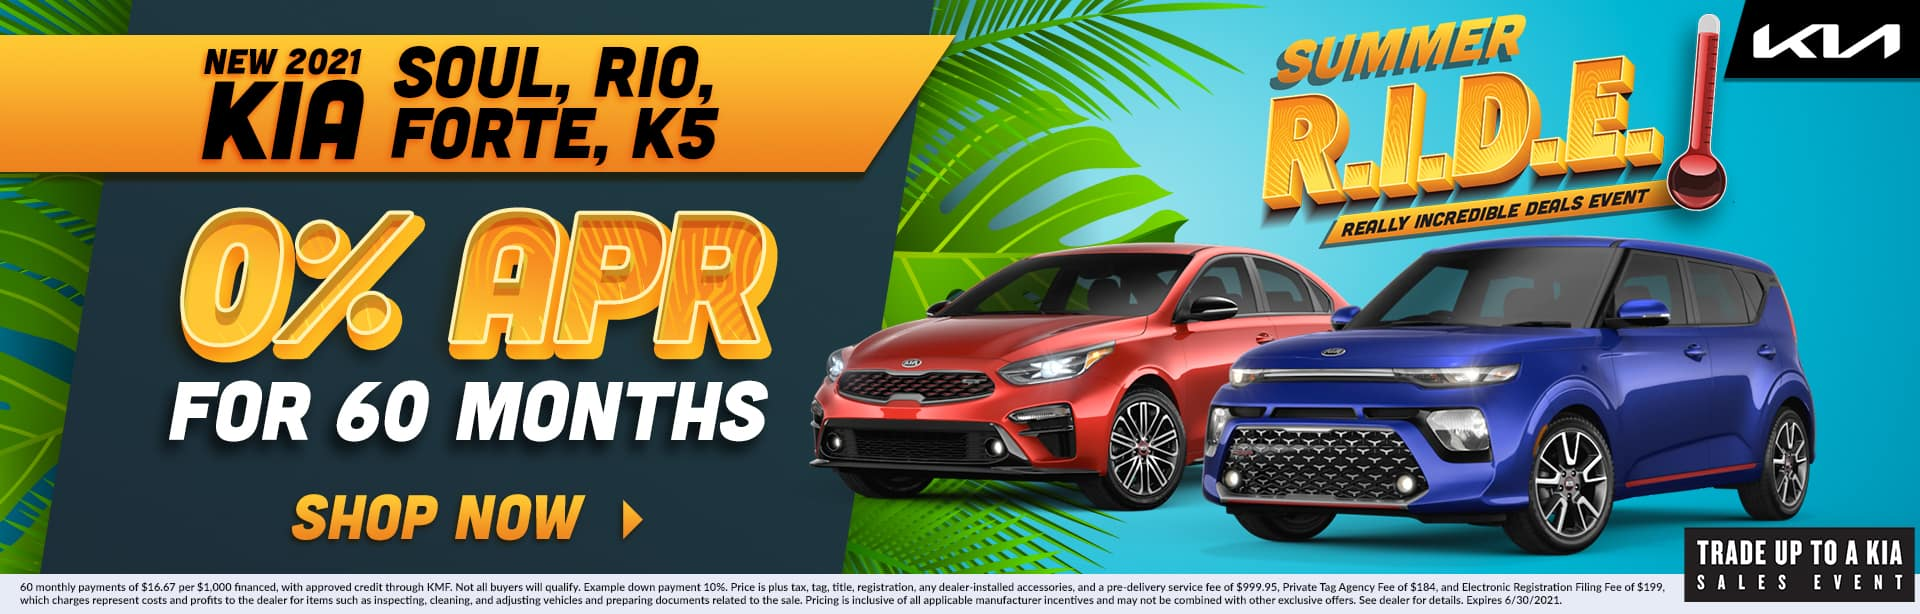 Summer R.I.D.E | Really Incredible Deals Event | 2021 Kia Soul, Rio, Forte, K5 | 0% APR For 60 Months